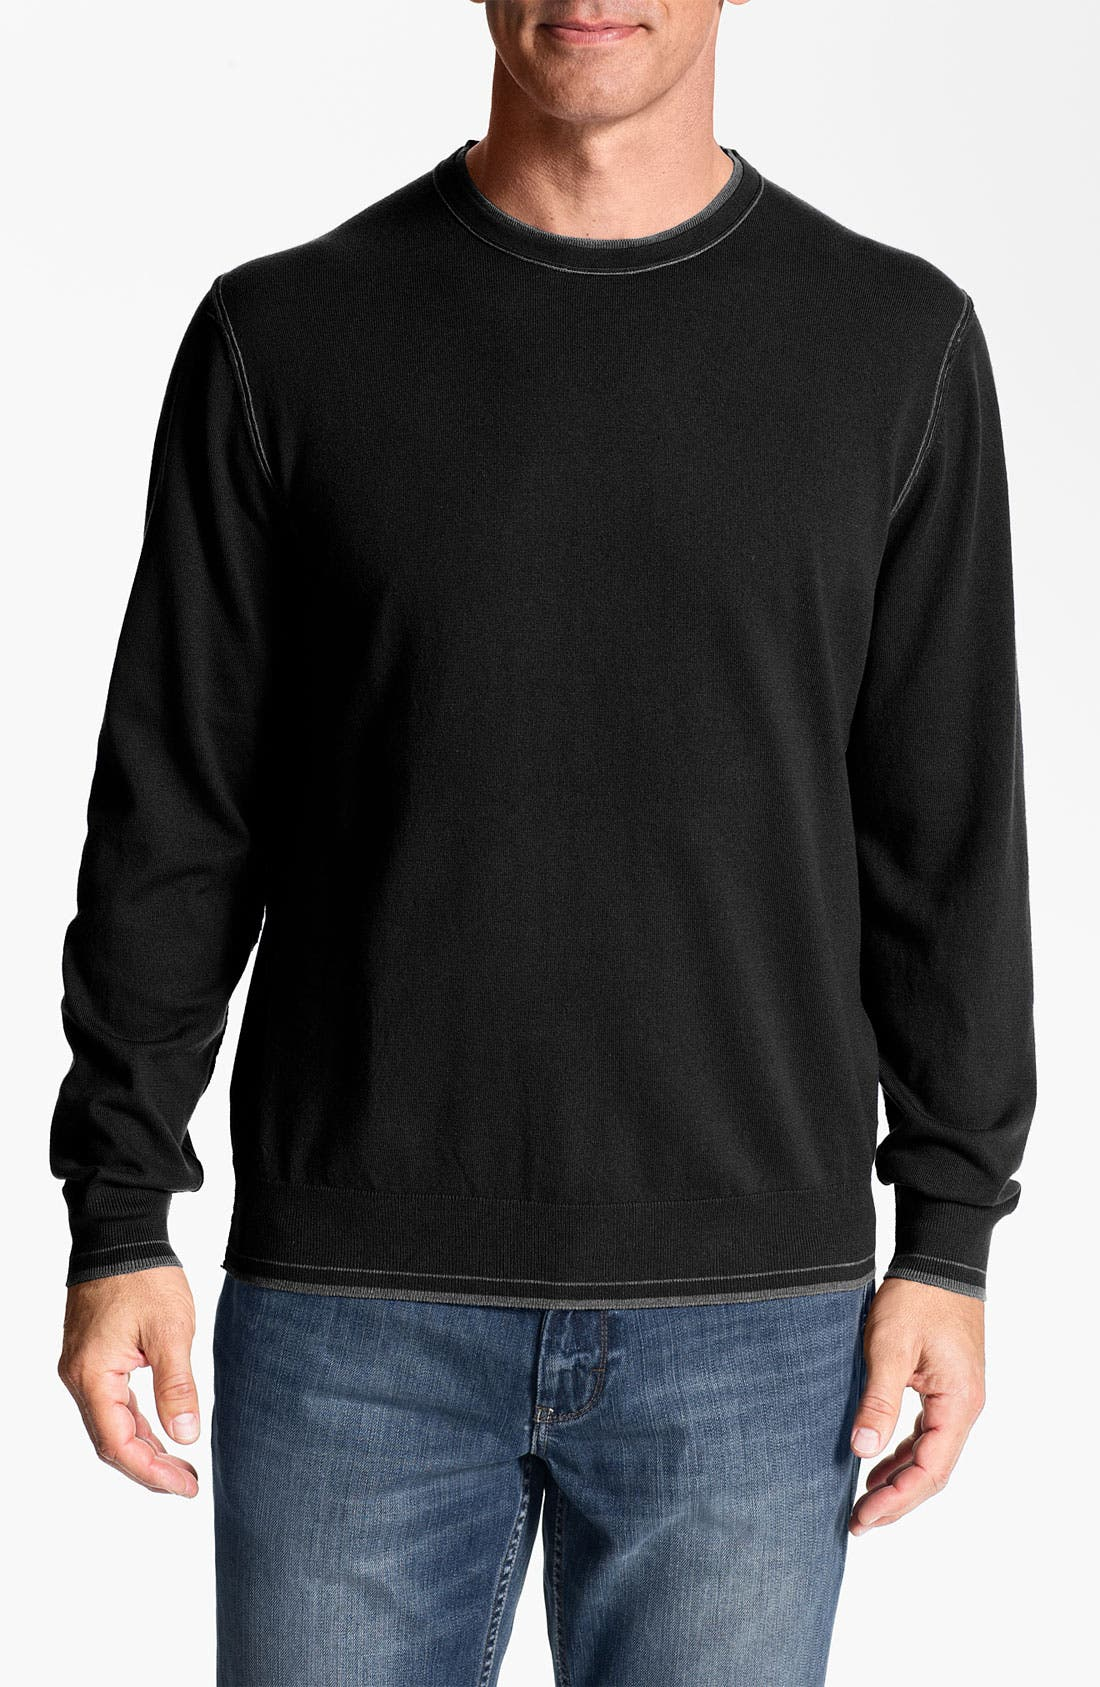 Main Image - Tommy Bahama 'Johnny Cashmere' Crewneck Cashmere Blend Sweater